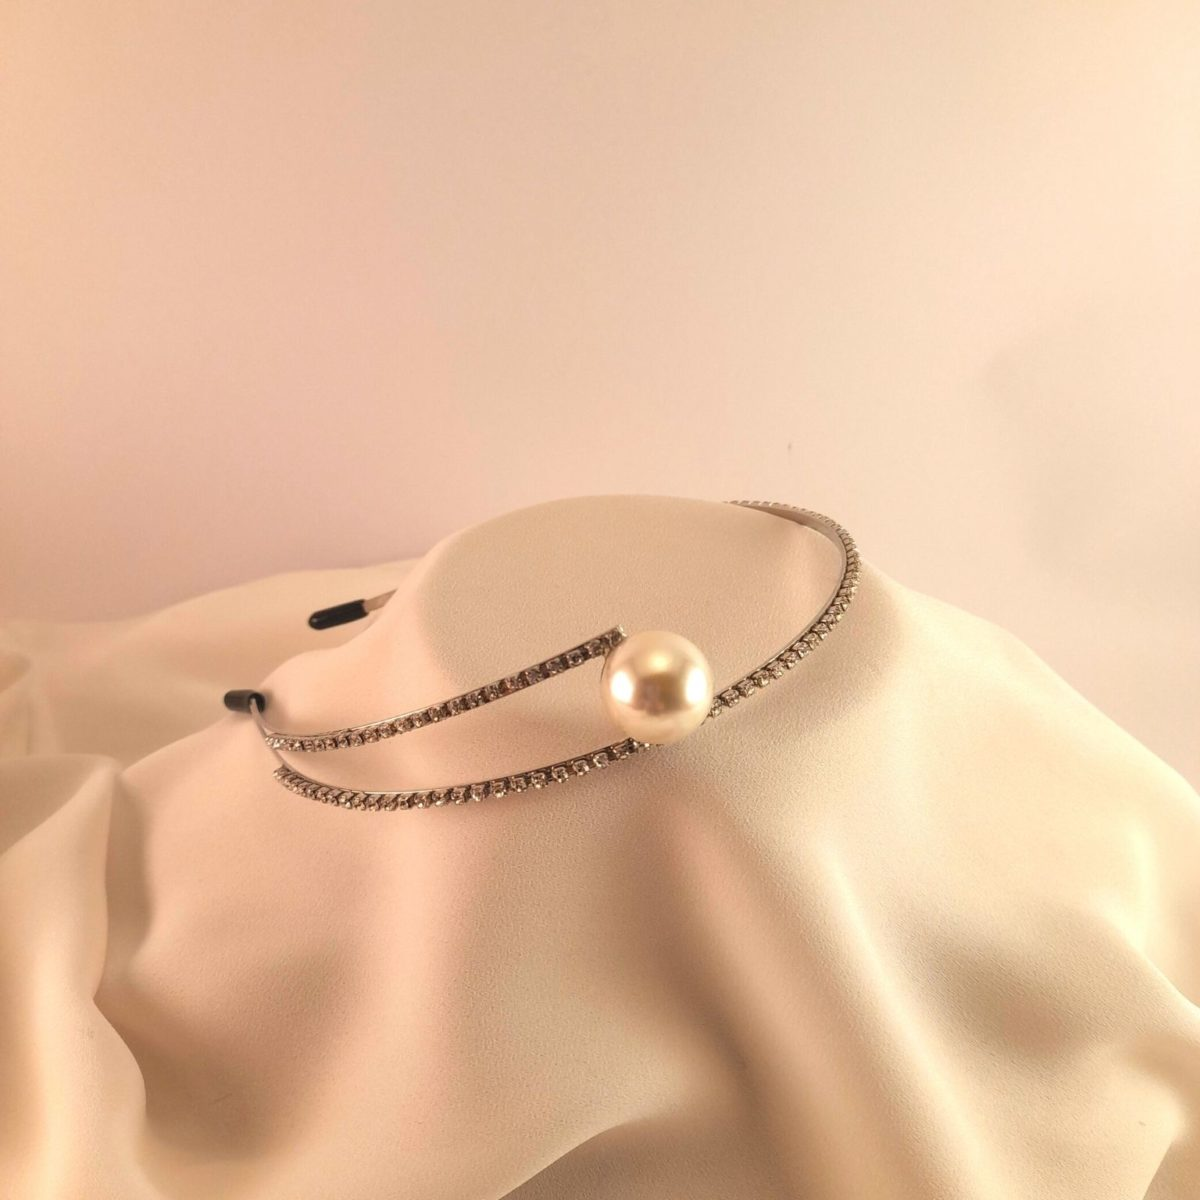 Golden Headband With 2 Straps Of Diamonds And A Pearl